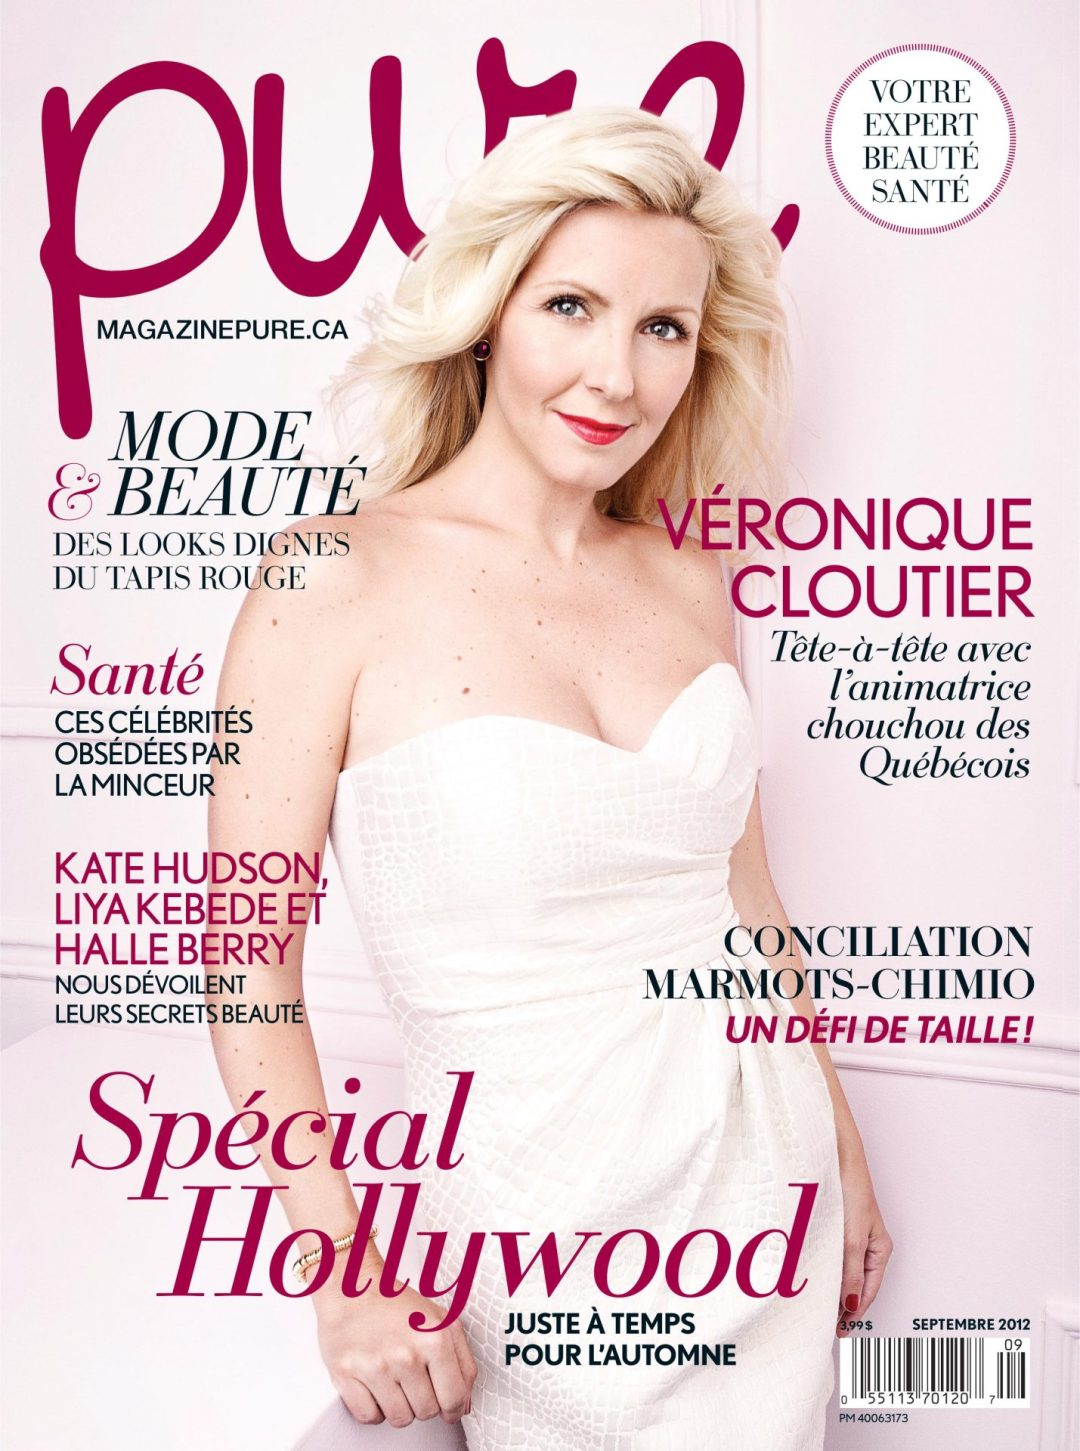 Magazine Pure Veronique Cloutier 2012 par Ariane Simard